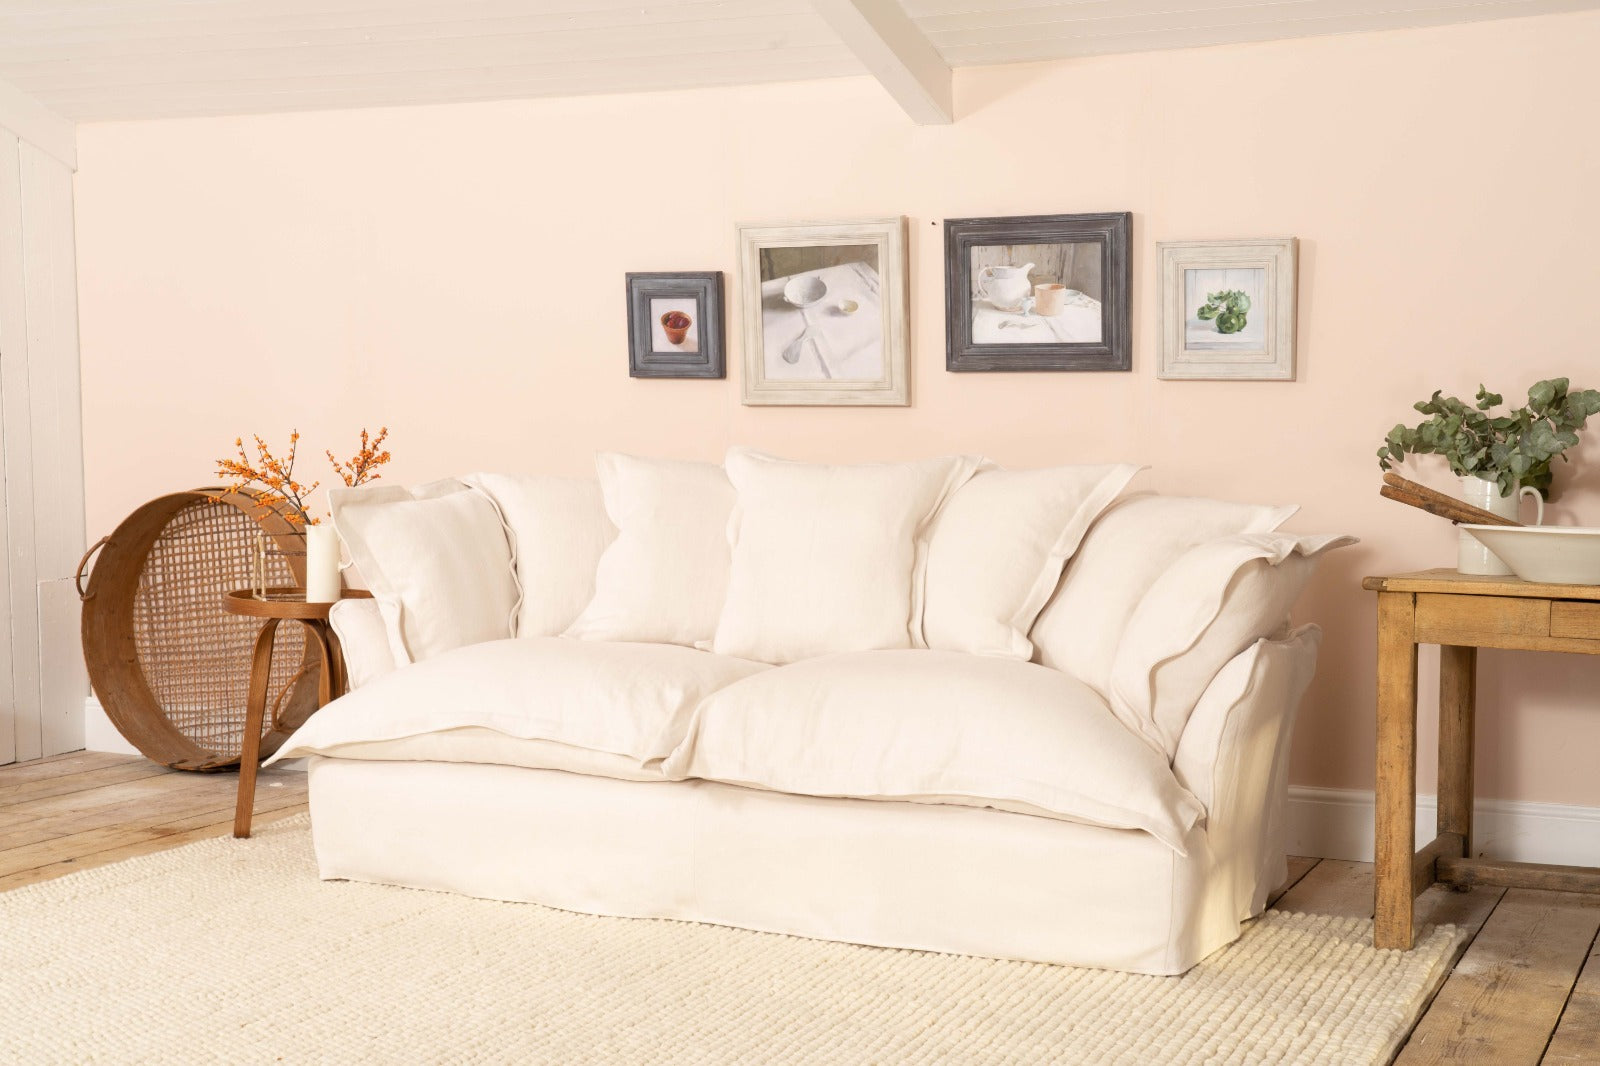 Song Sofa in Moonstone 100% Linen with scatter cushions with a pillow edge